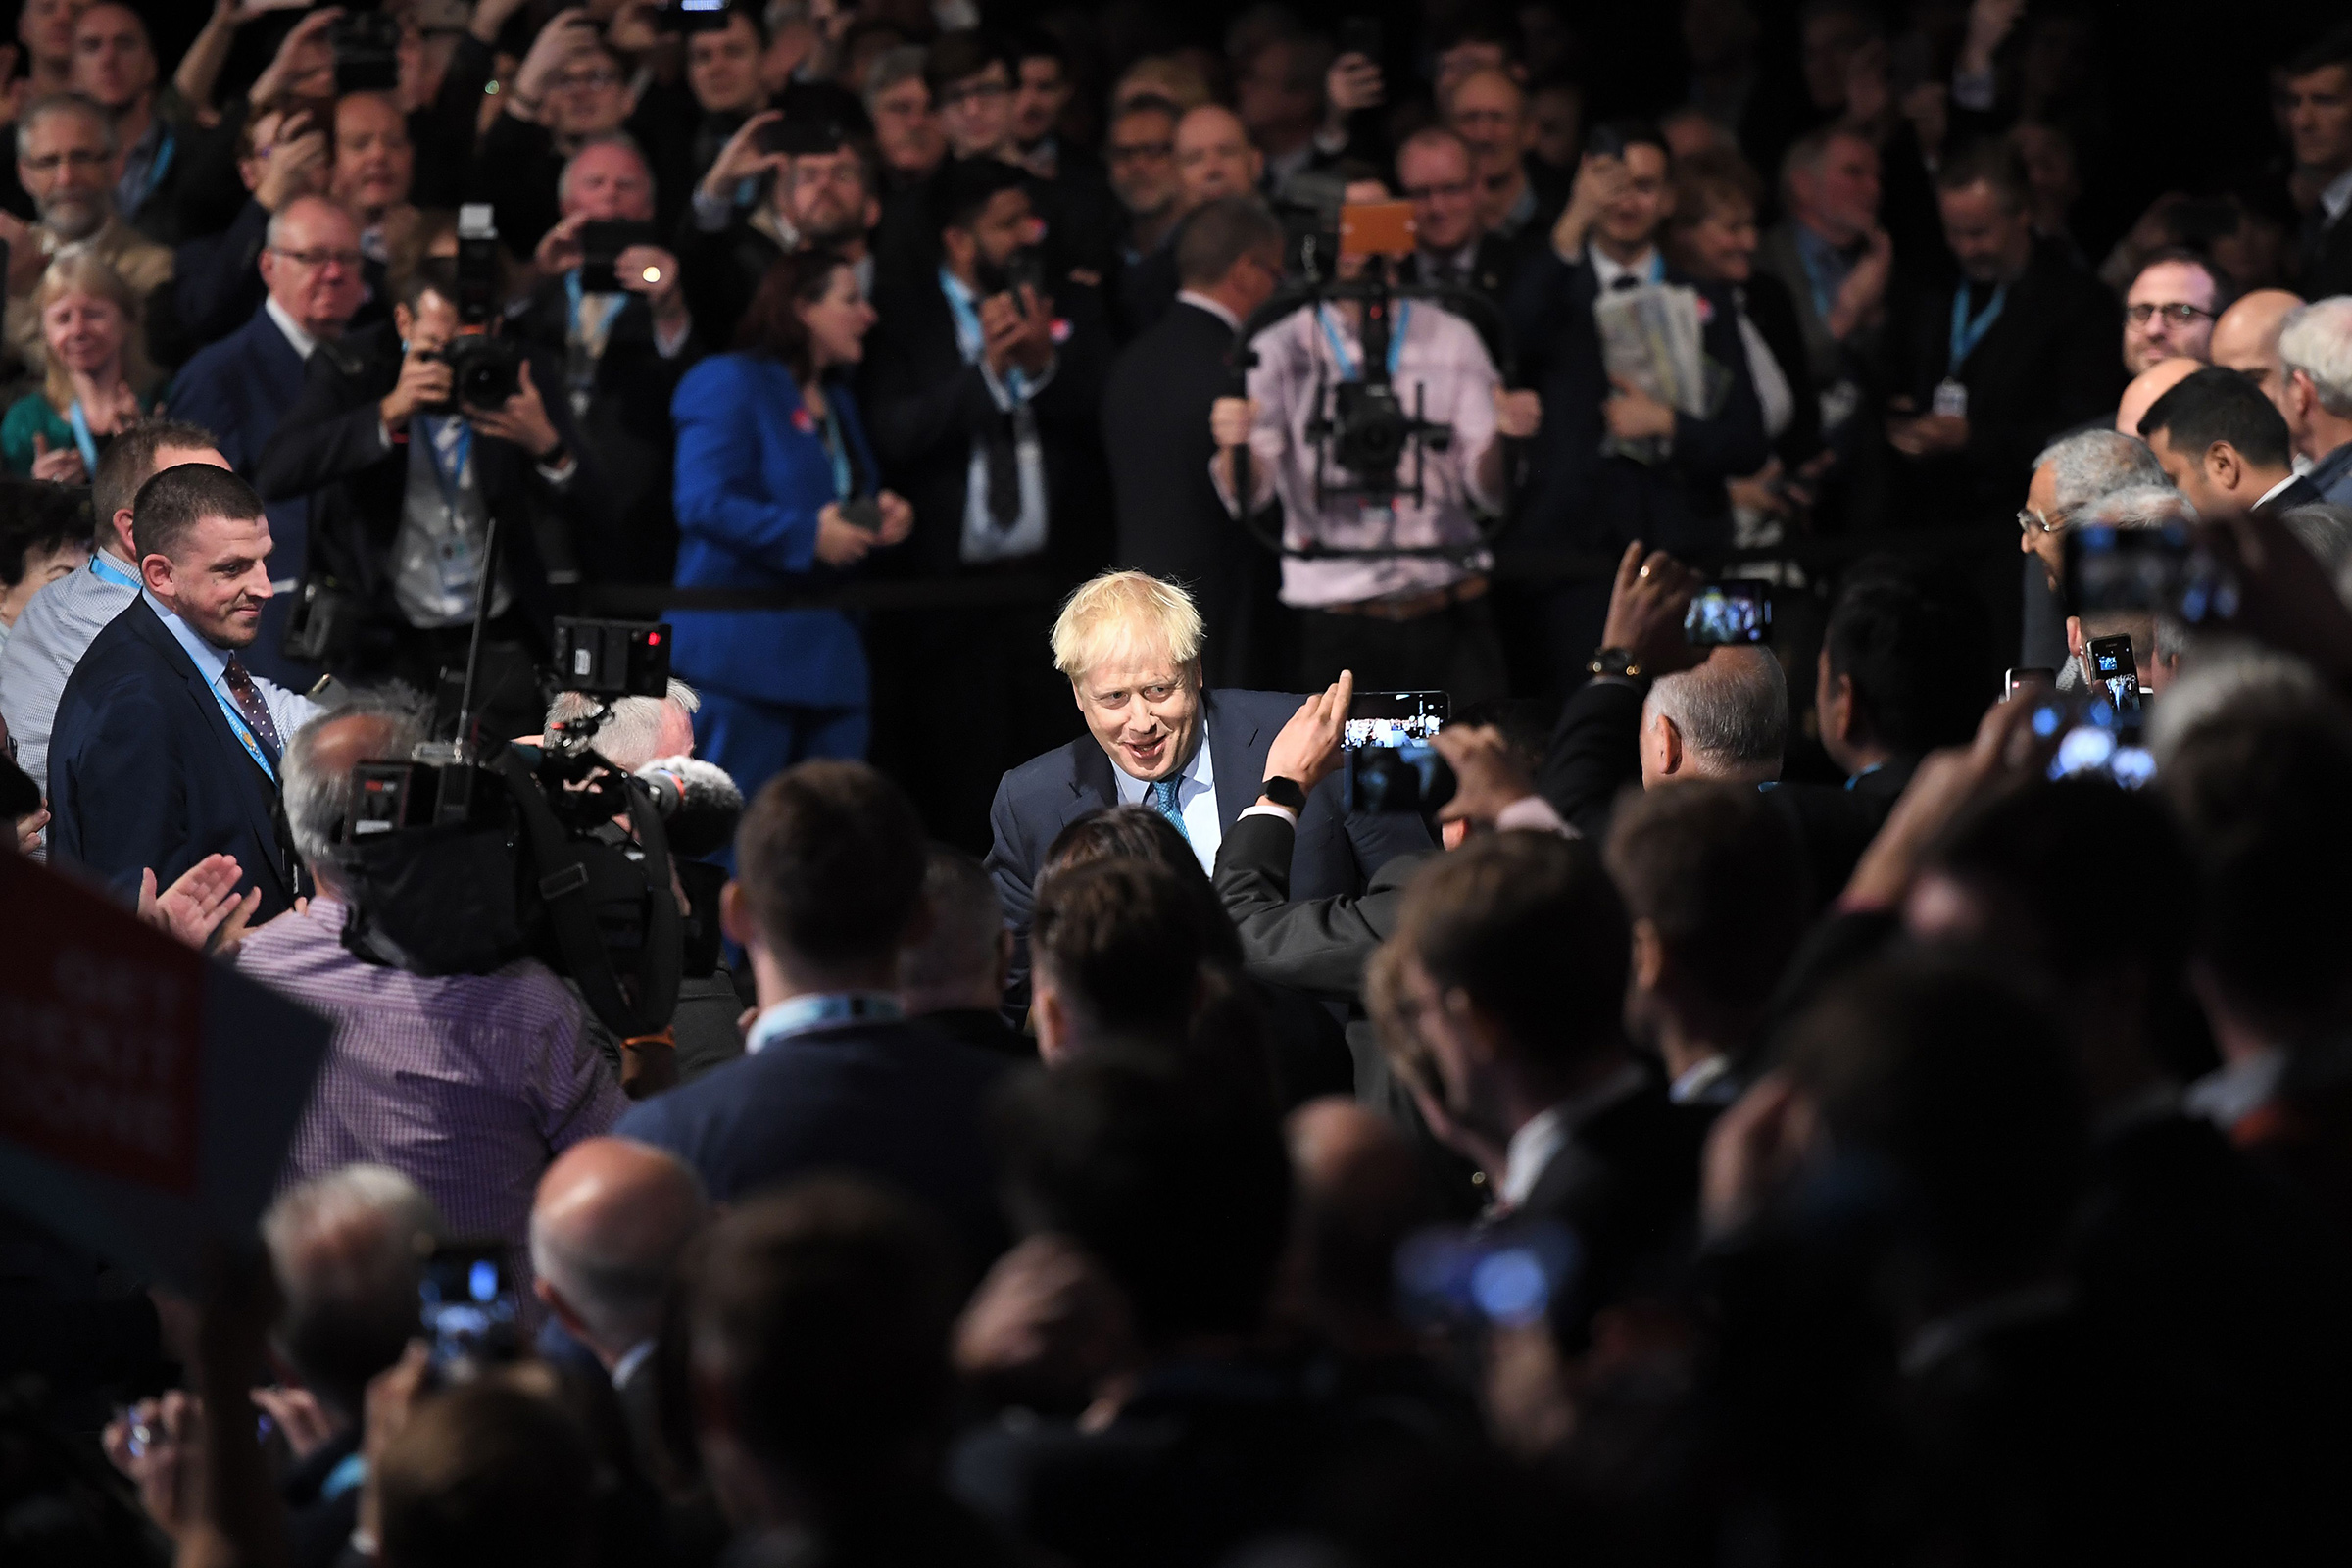 Even amid scandal, Boris Johnson was hailed by many at the U.K.'s Conservative Party conference on Oct.2